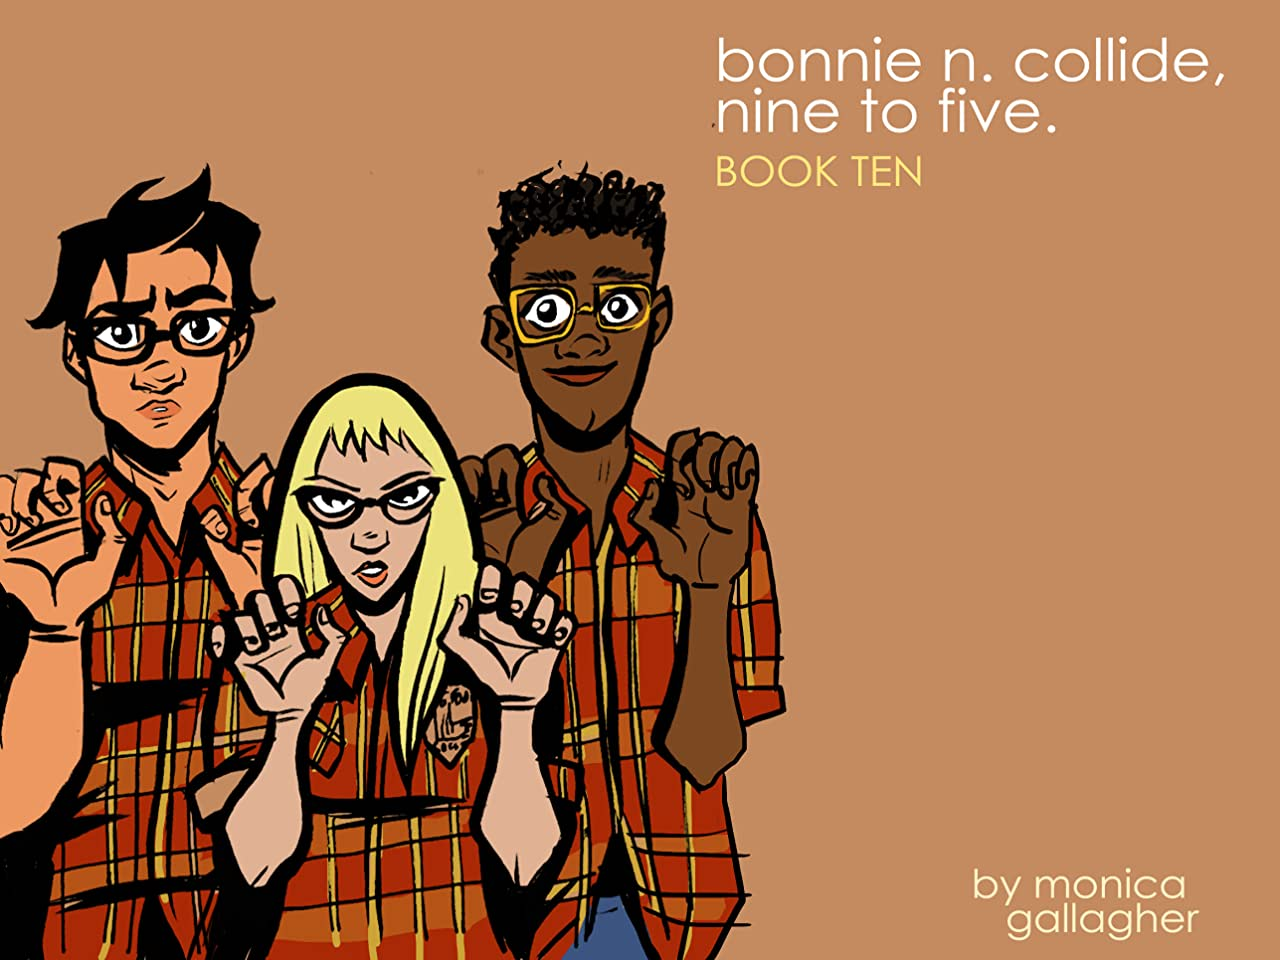 Bonnie N. Collide, Nine to Five #10